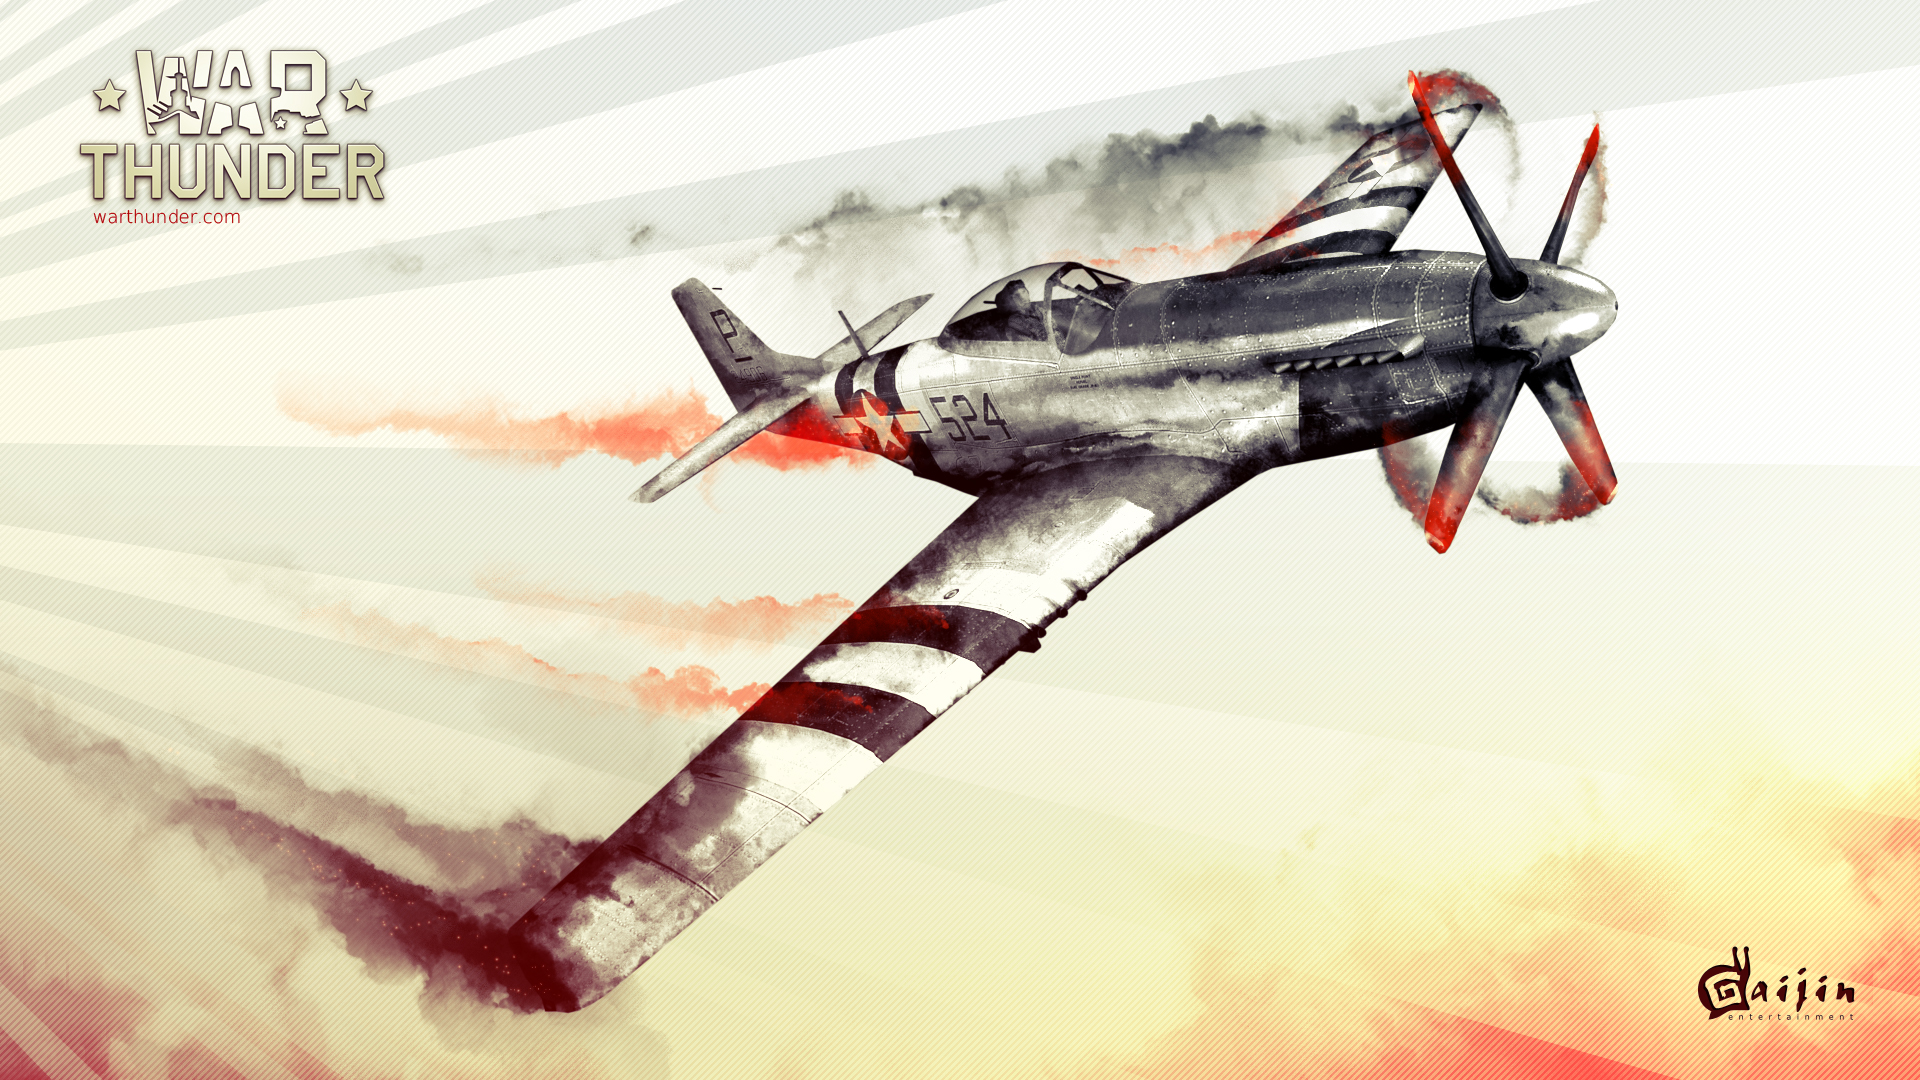 War Thunder 1267.88 Kb